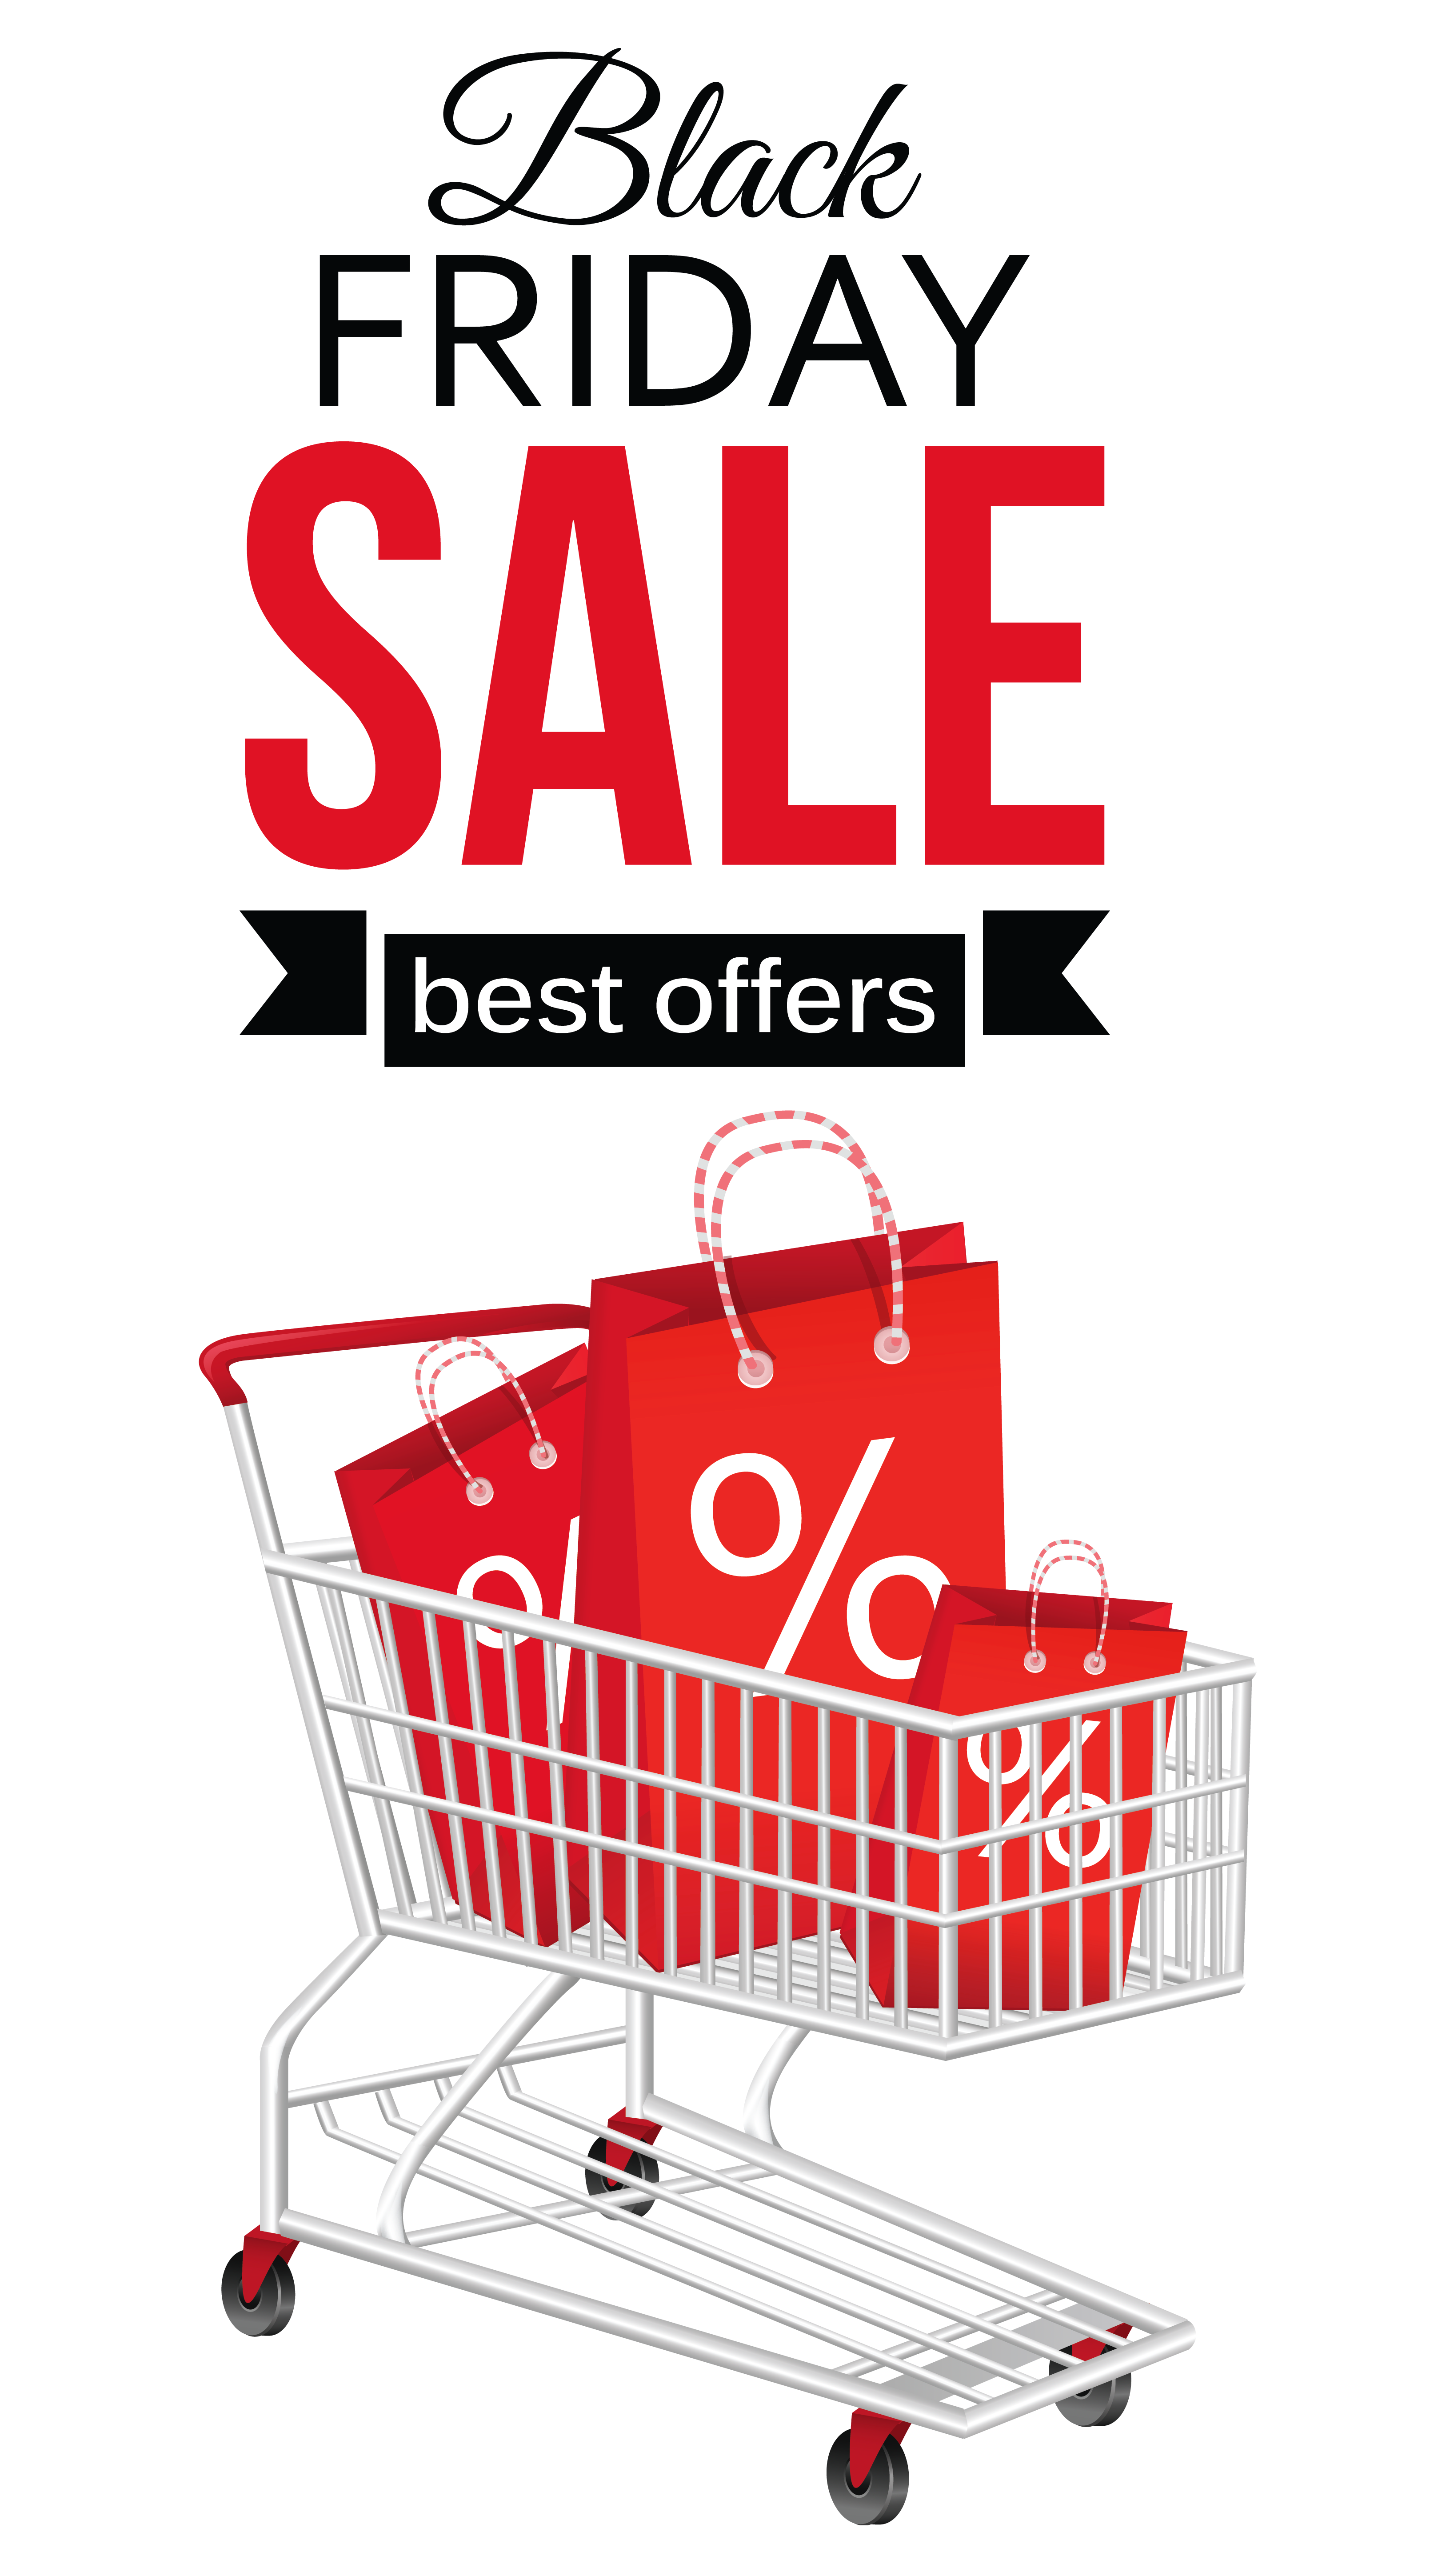 Wagon clipart trolley. Black friday sale with